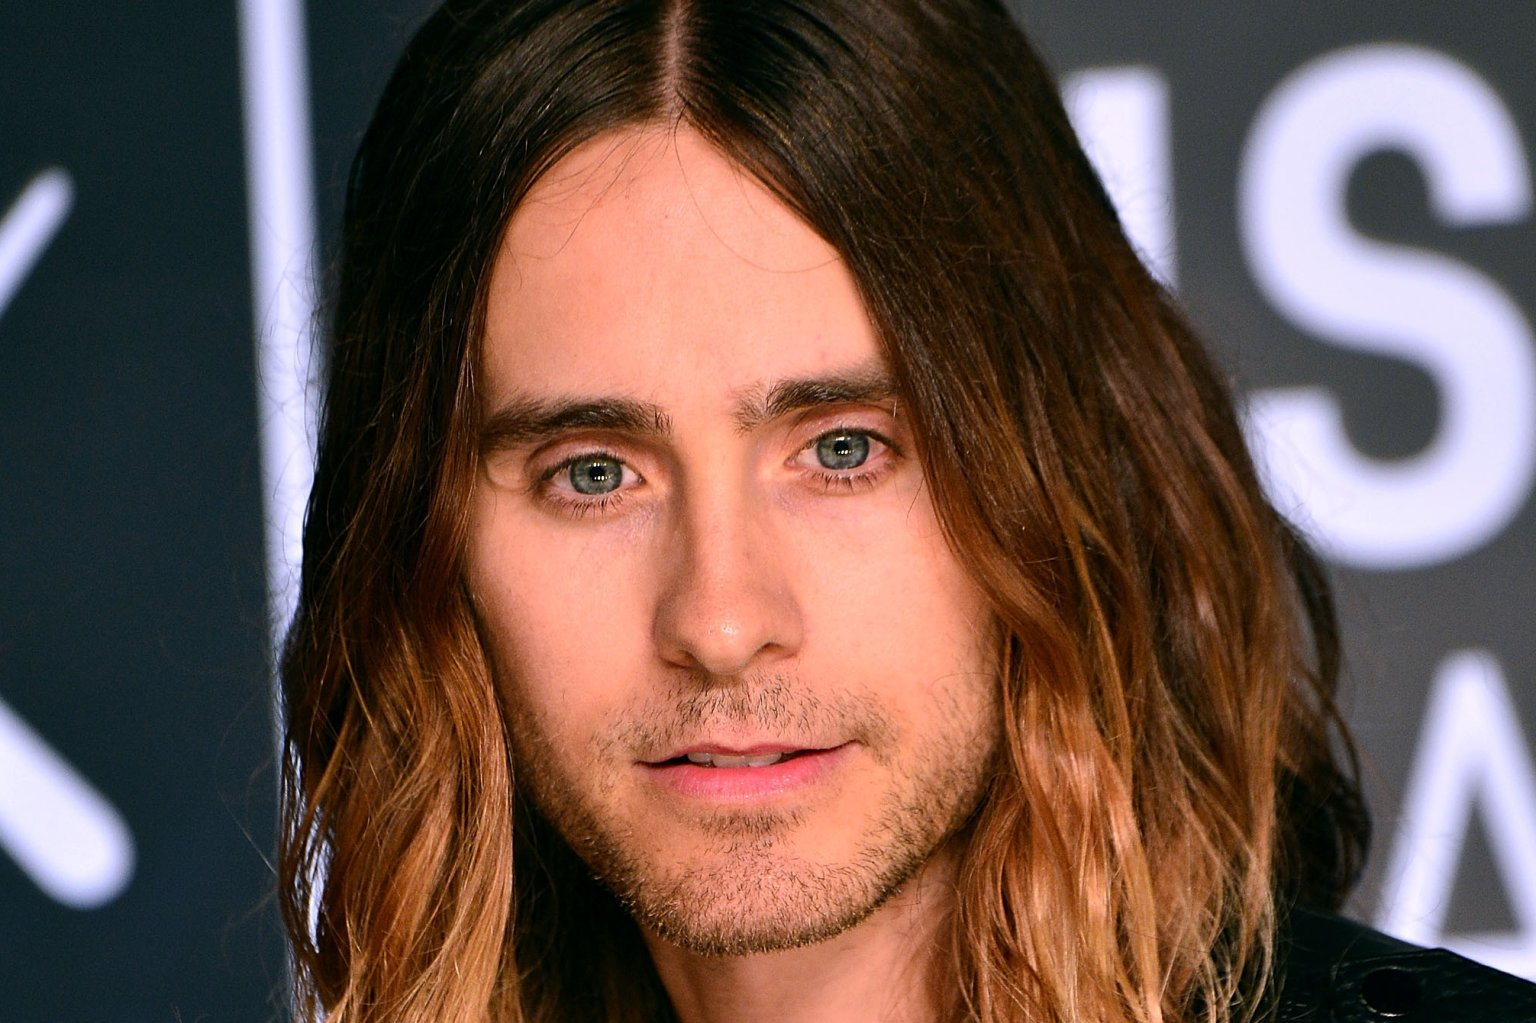 o-JARED-LETO-2013-VMA-facebook